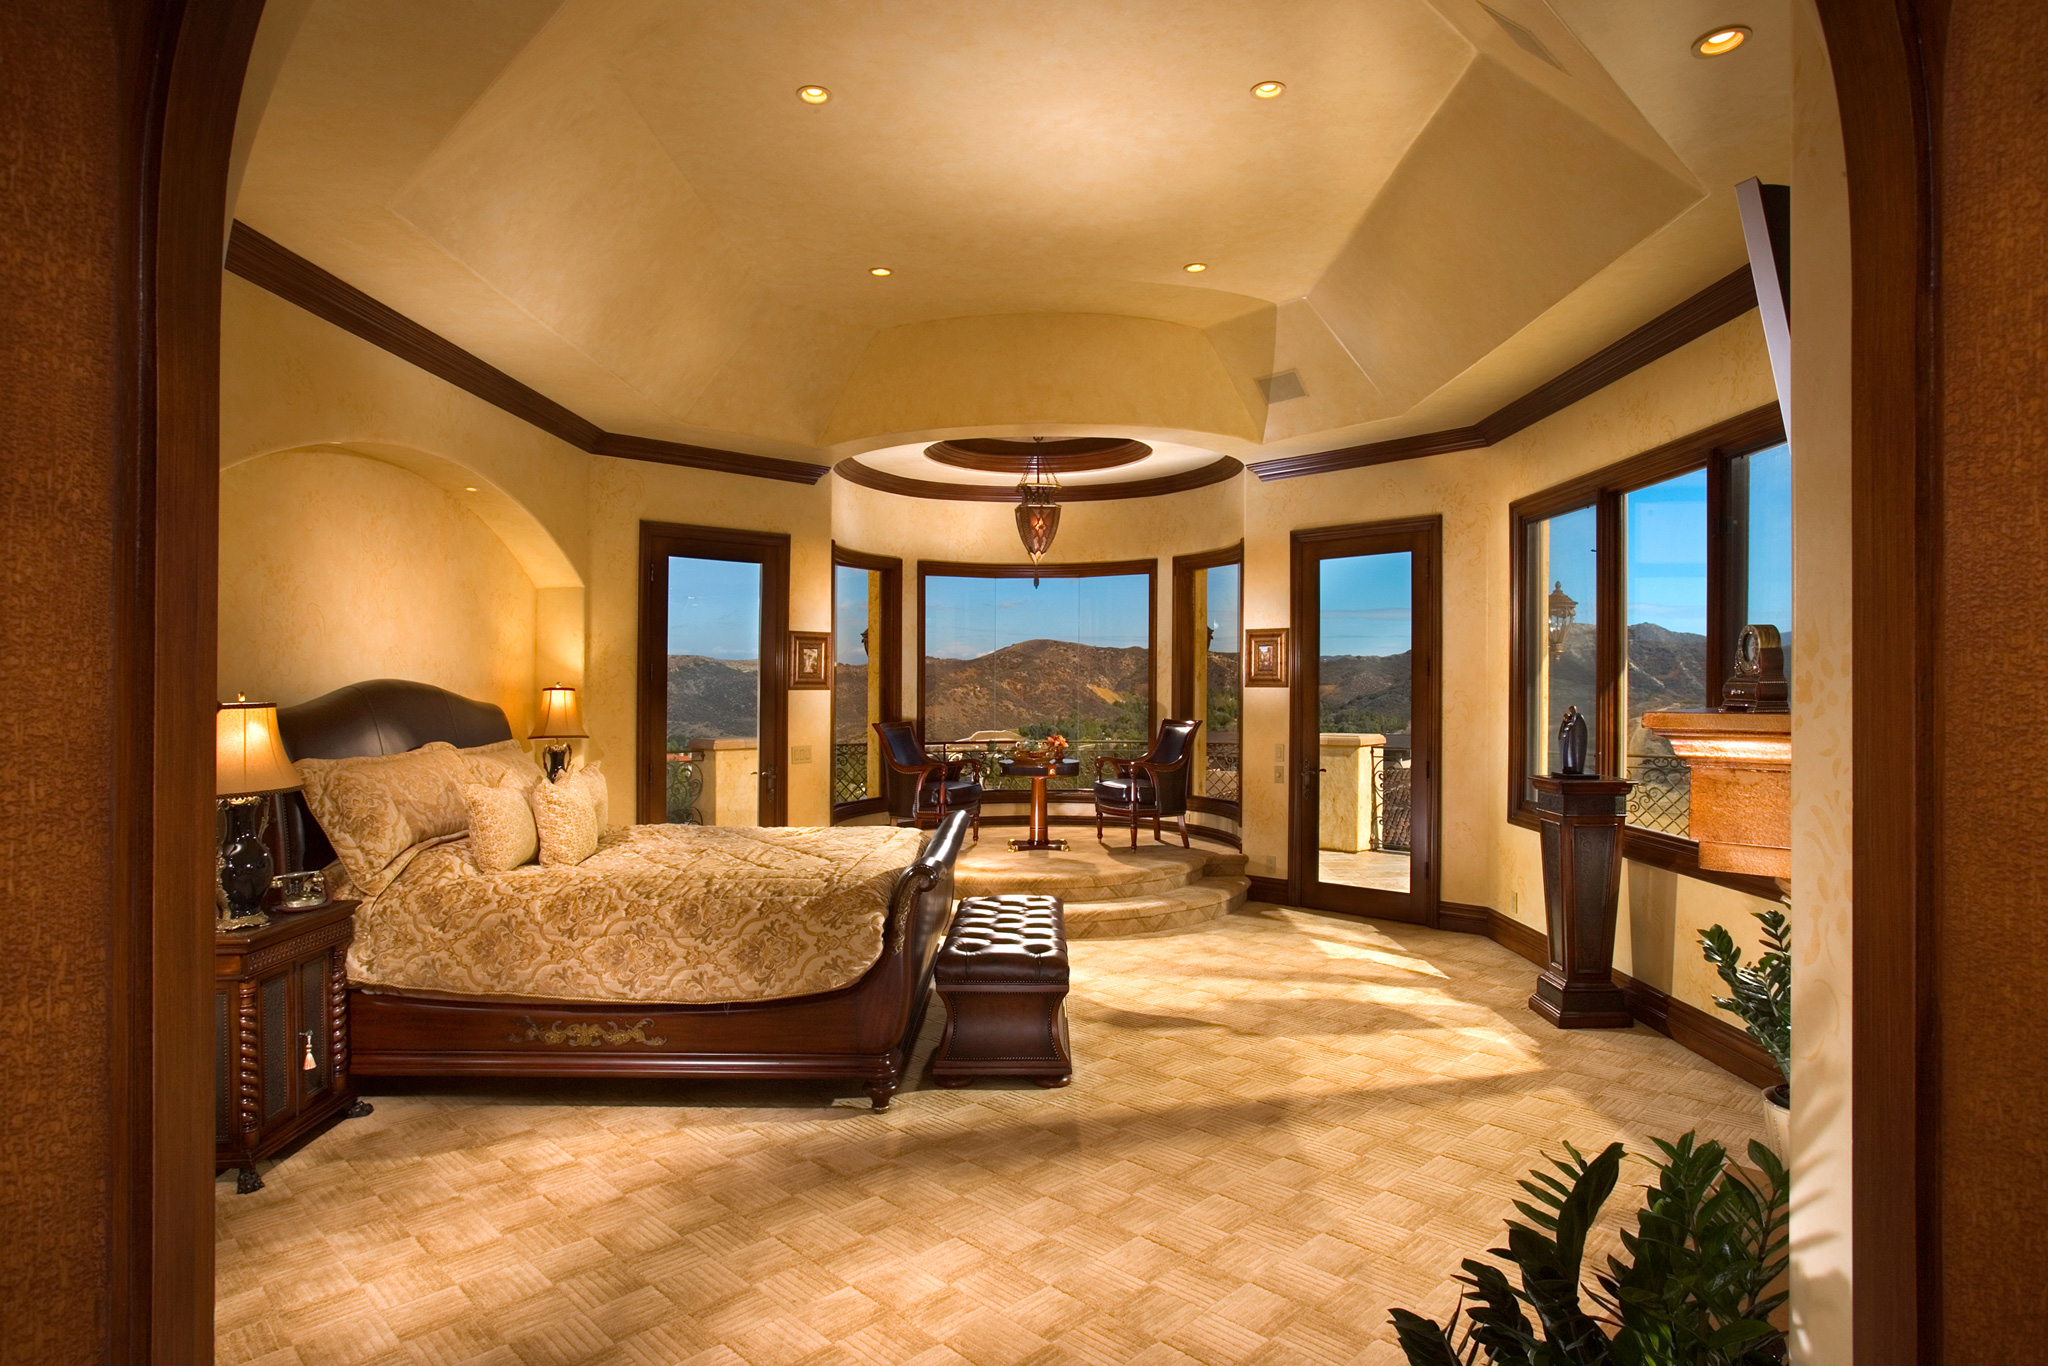 Master bedroom the interior designs for Master bedroom interior design ideas